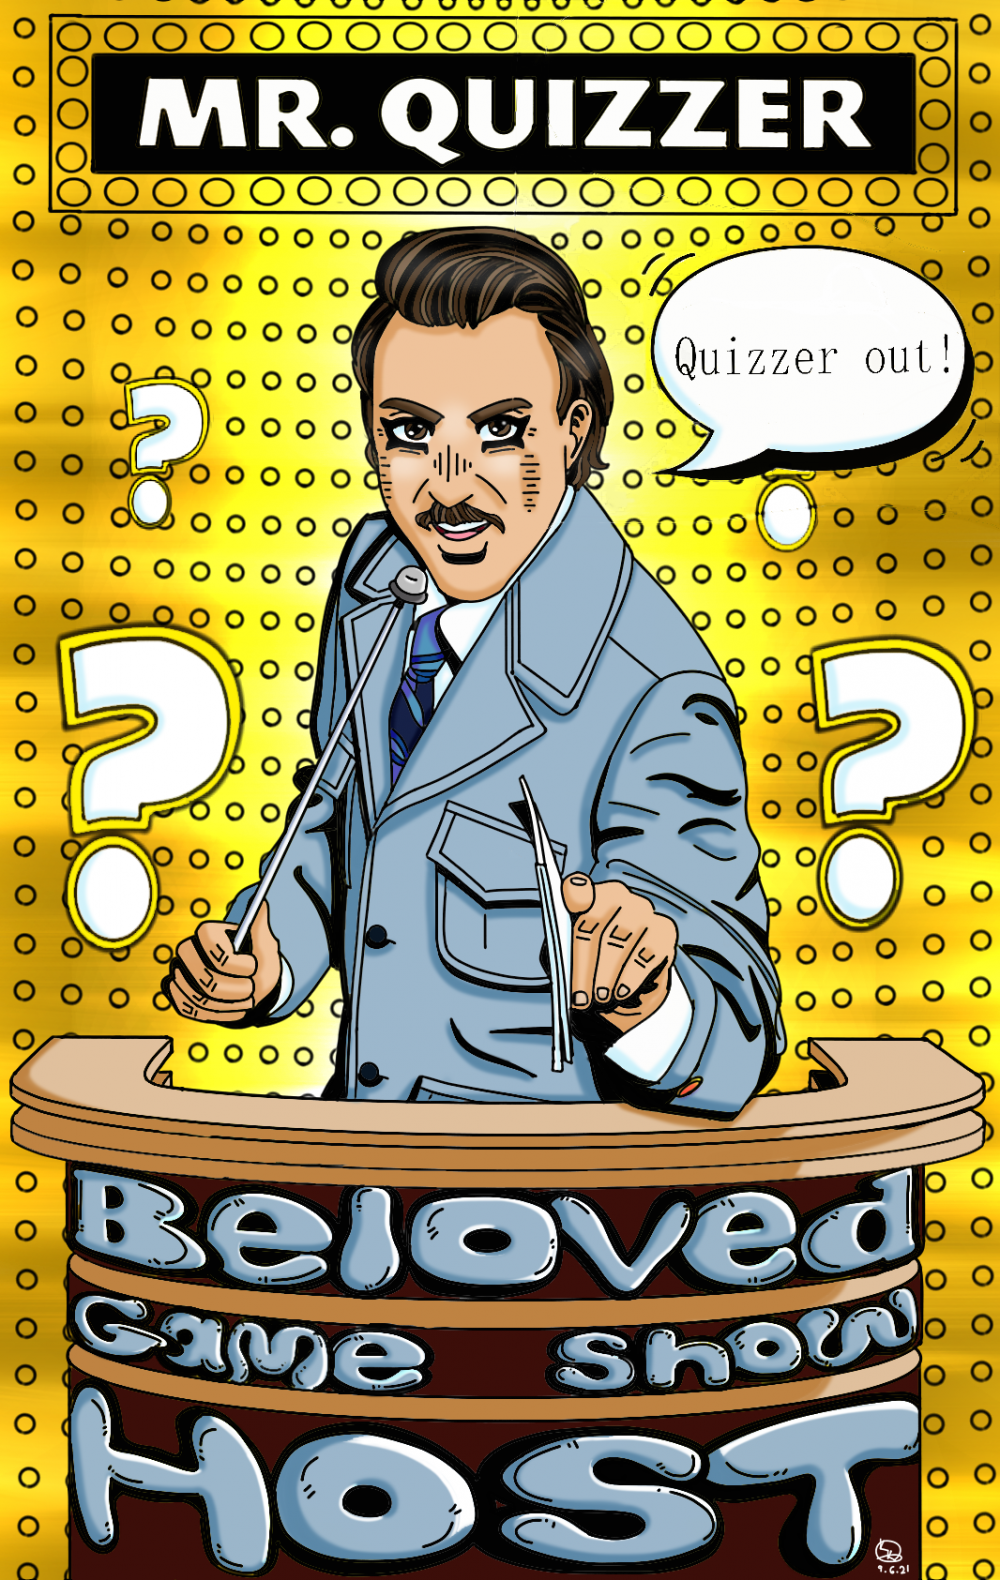 Artwork of and for the amazing Mr. Quizzer. He is the beloved game show host and true king of quizzes and trivia! Quiz on, Mr. Quizzer!